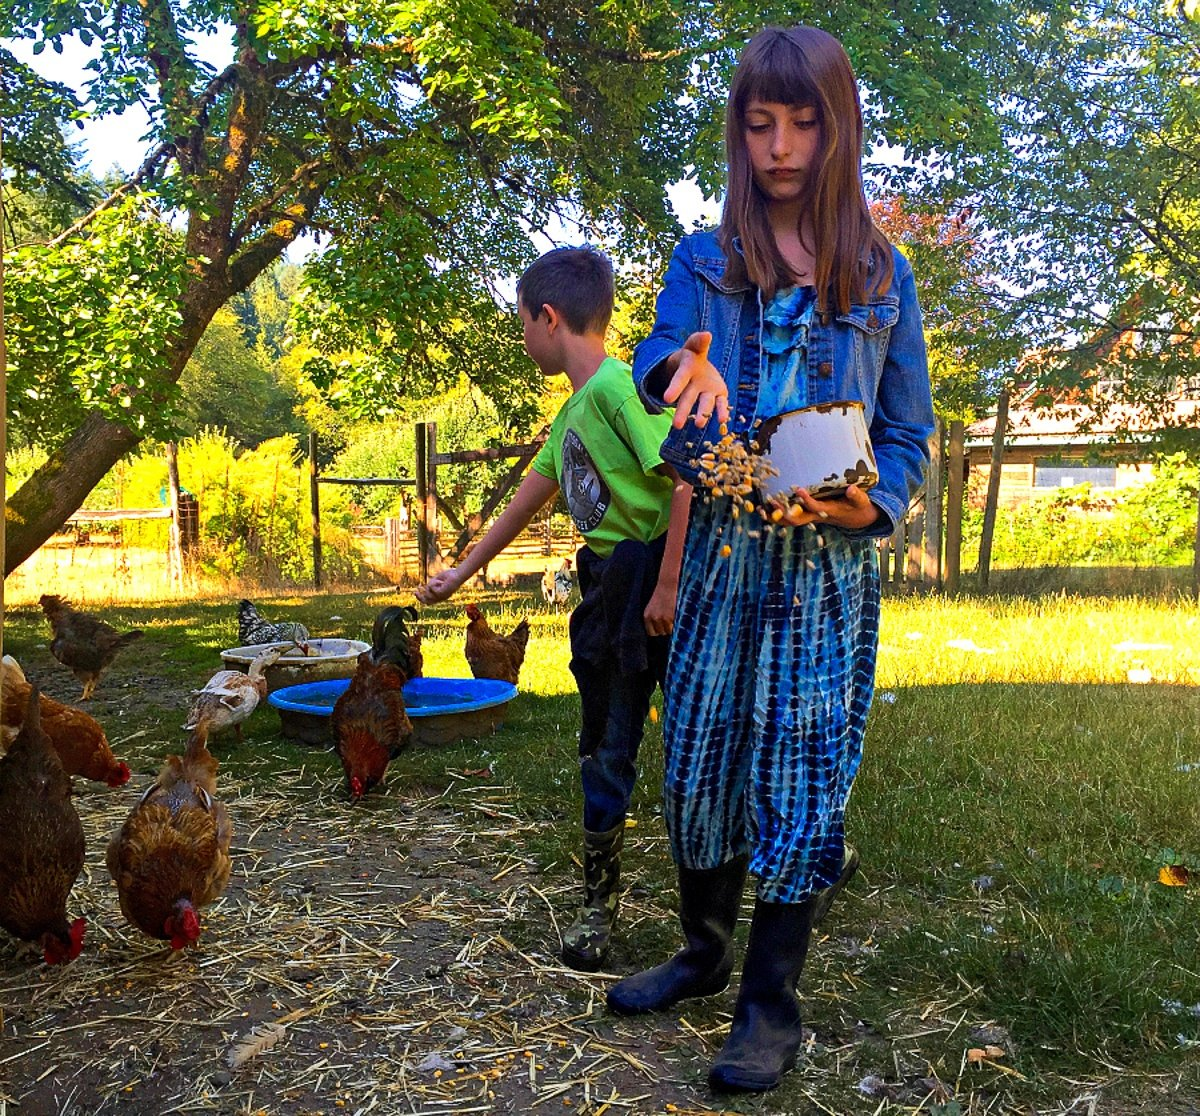 Kids feeding ducks and chickens during a farm stay vacation